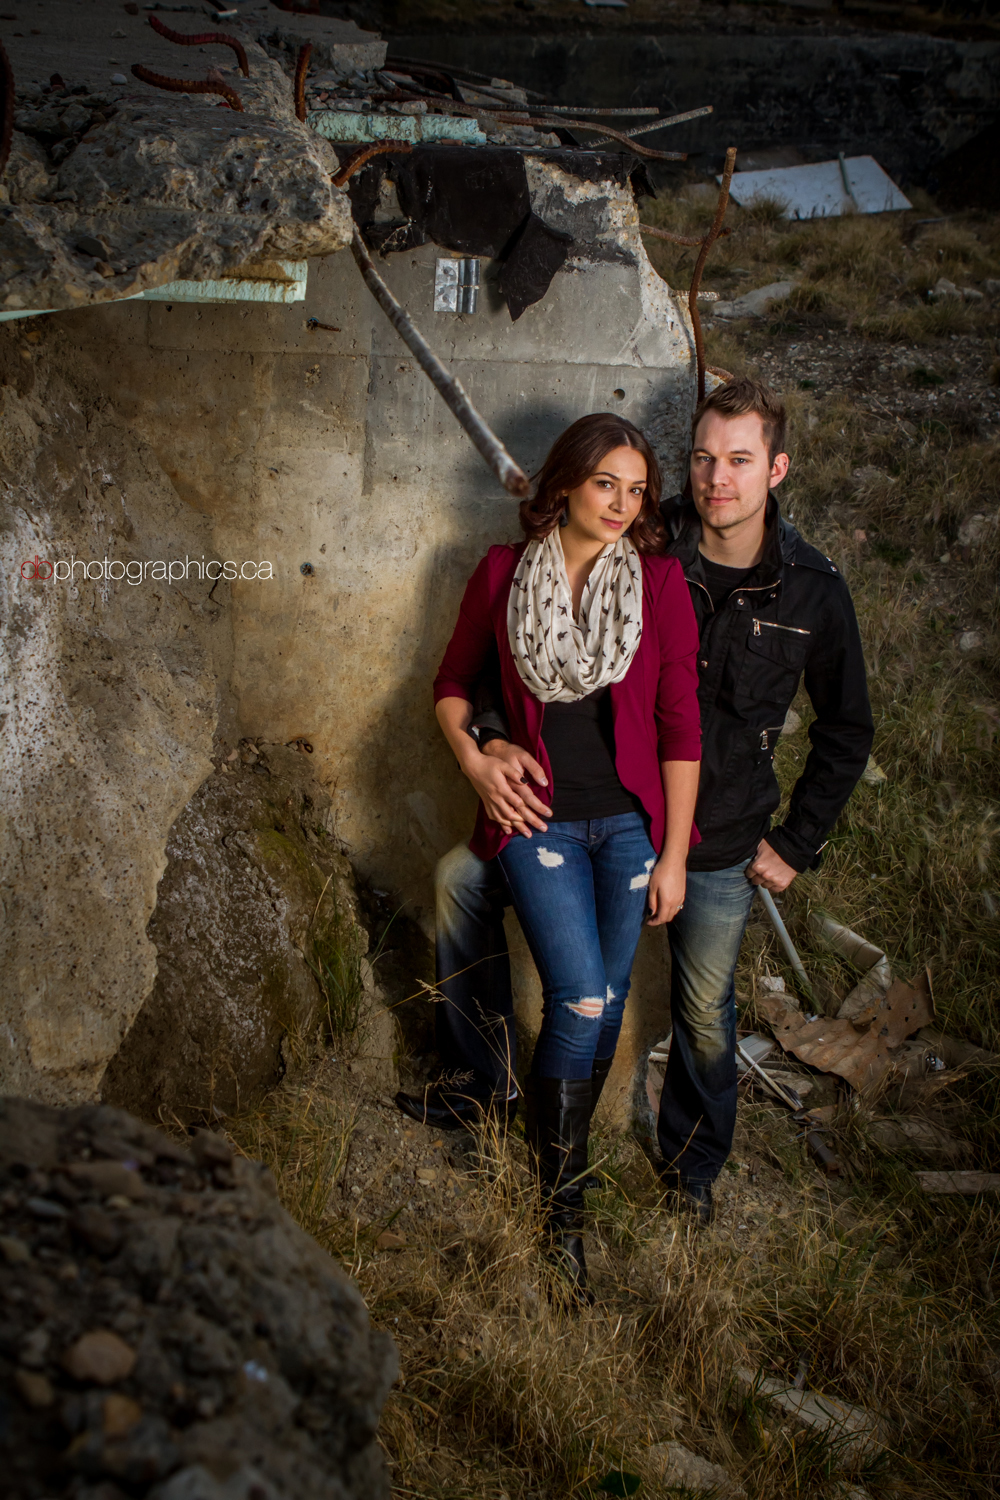 Gaea & Kurt - Engagement Session - 20131020 - 0042.jpg